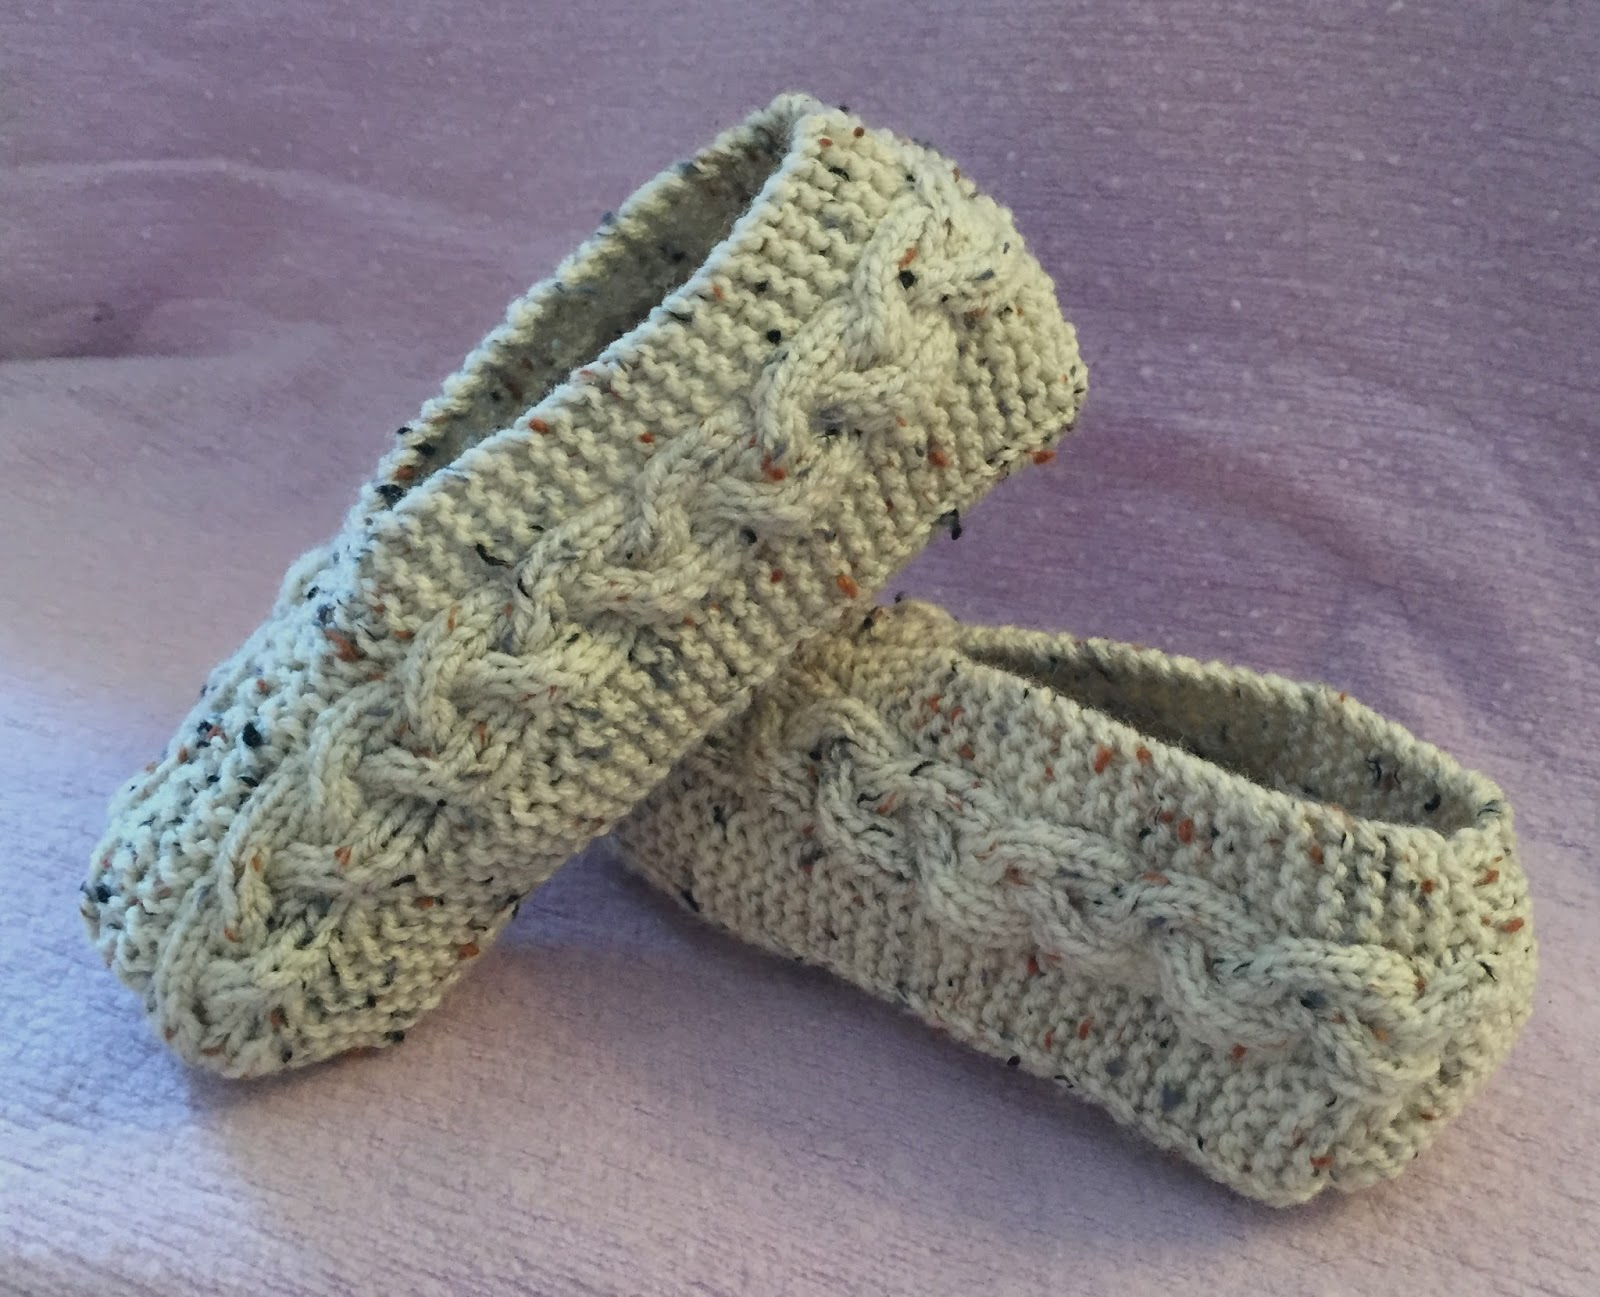 Kweenbee and me learn to knit slippers with these patterns cable knit slippers 299 learn to knit comfy cozy cabled slippers this pattern shows you how to make slippers for children from a small size 3 to a bankloansurffo Choice Image